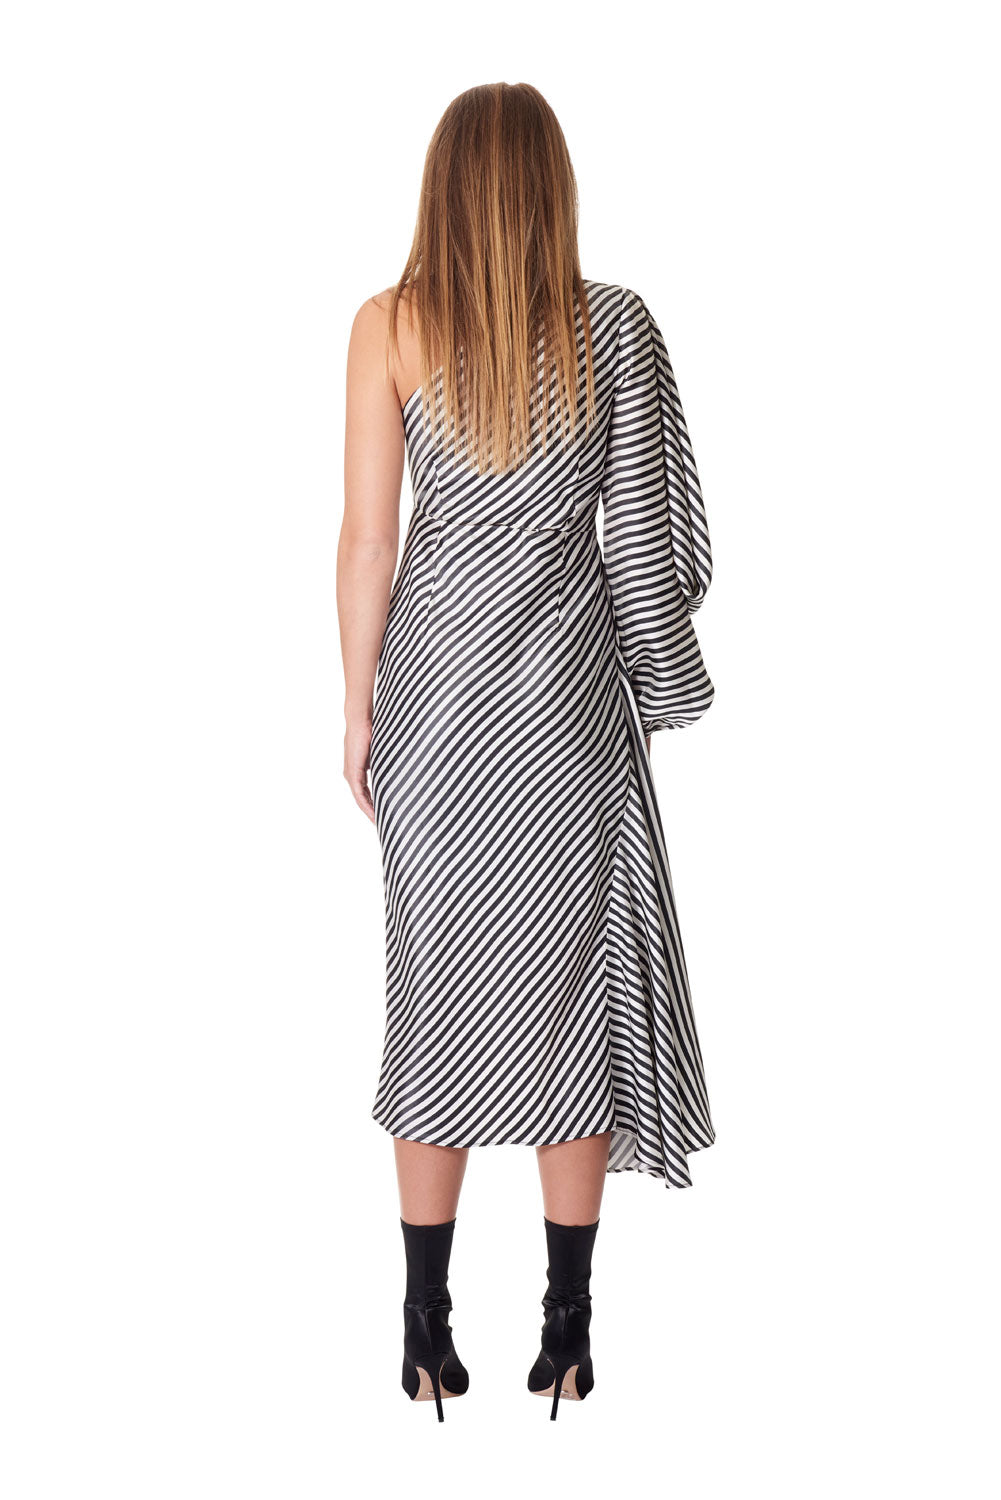 Attitude scarf knot dress - Stripe